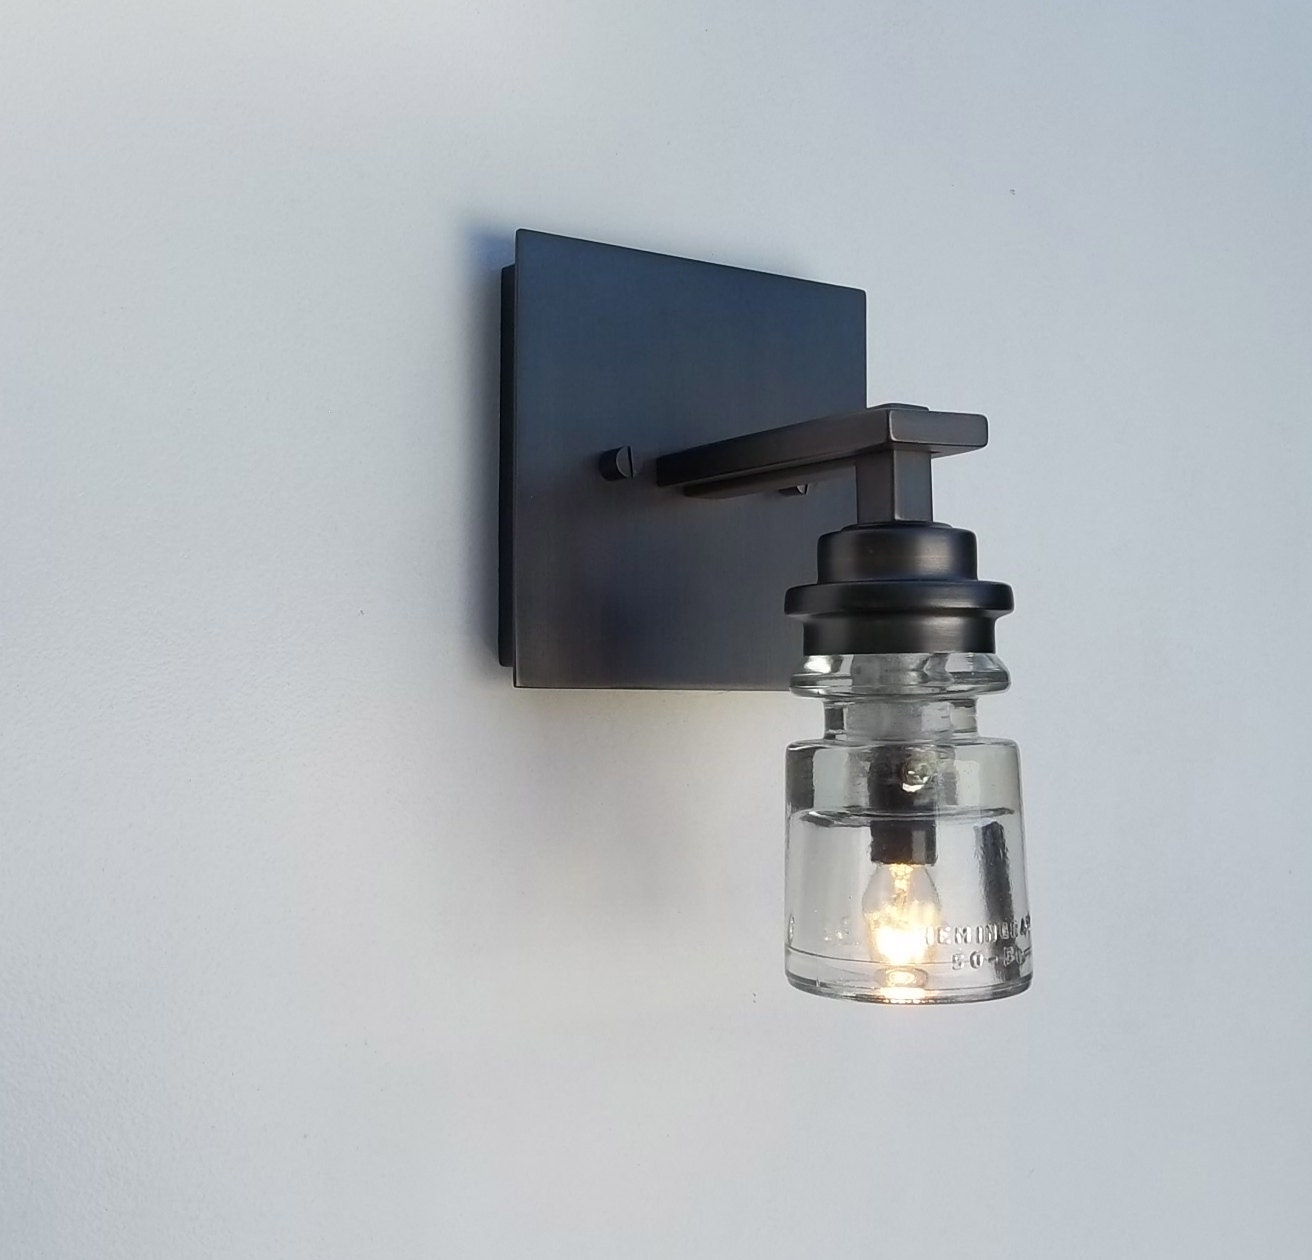 clear glass insulator wall light fixture by cre8iveconcrete. Black Bedroom Furniture Sets. Home Design Ideas